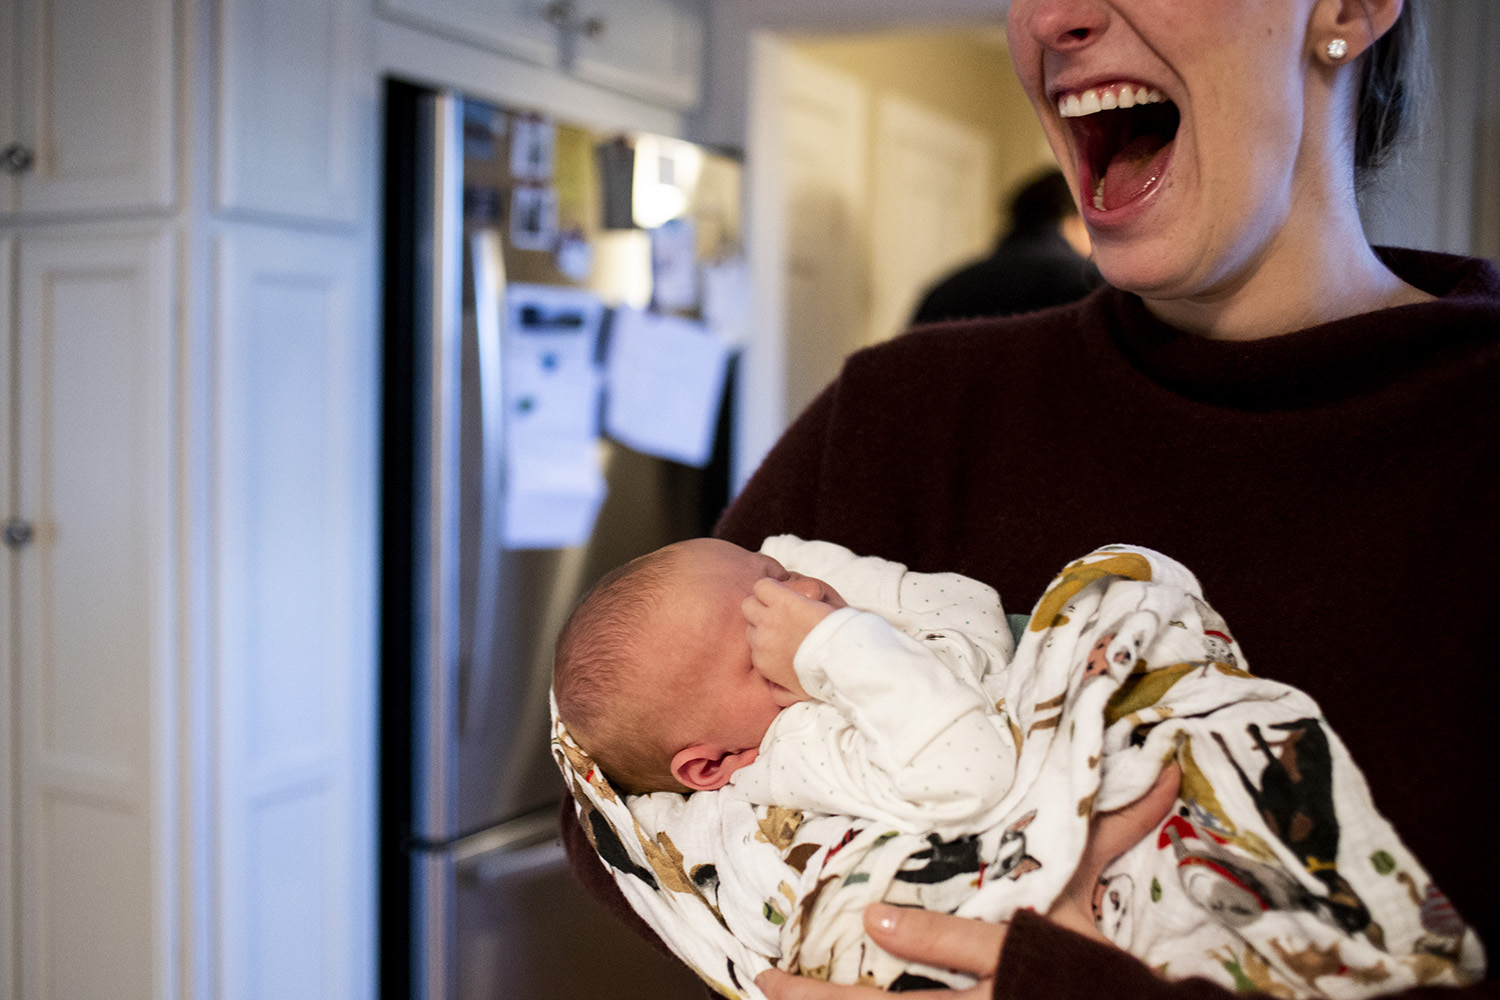 Joyful portrait of newborn motherhood in Boston Massachusetts.